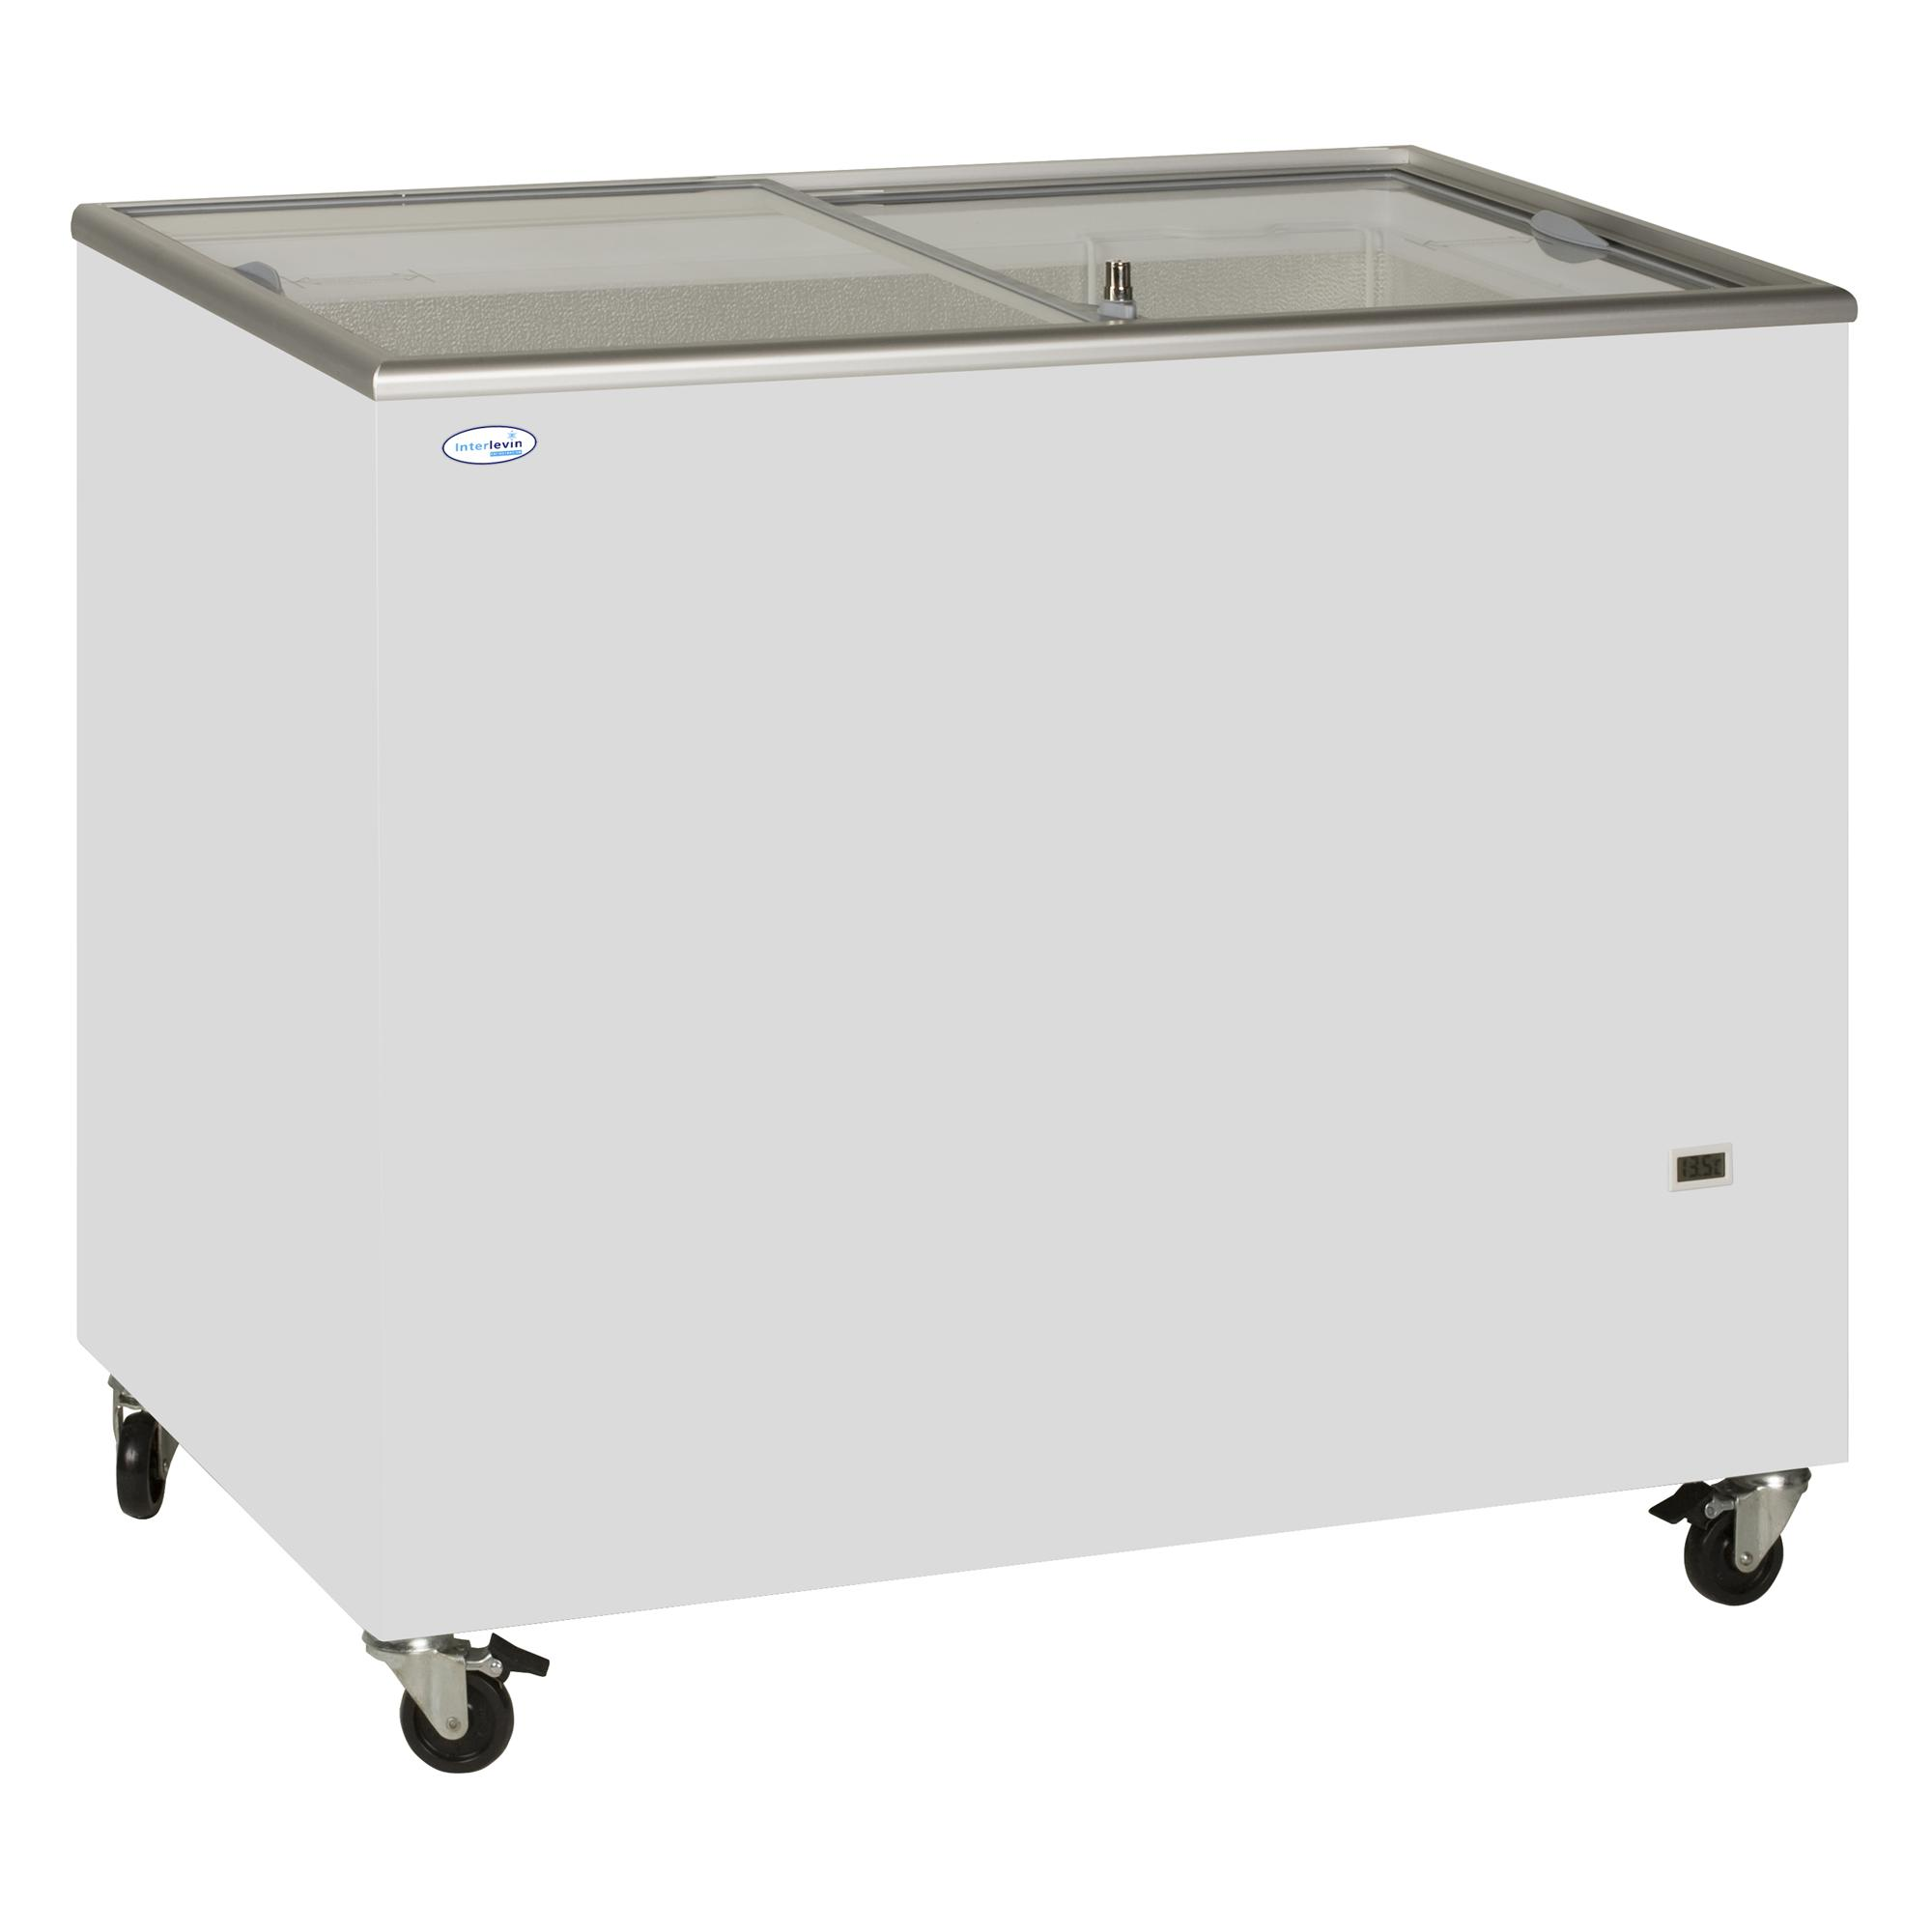 Sliding Flat Glass Lid Chest Freezer